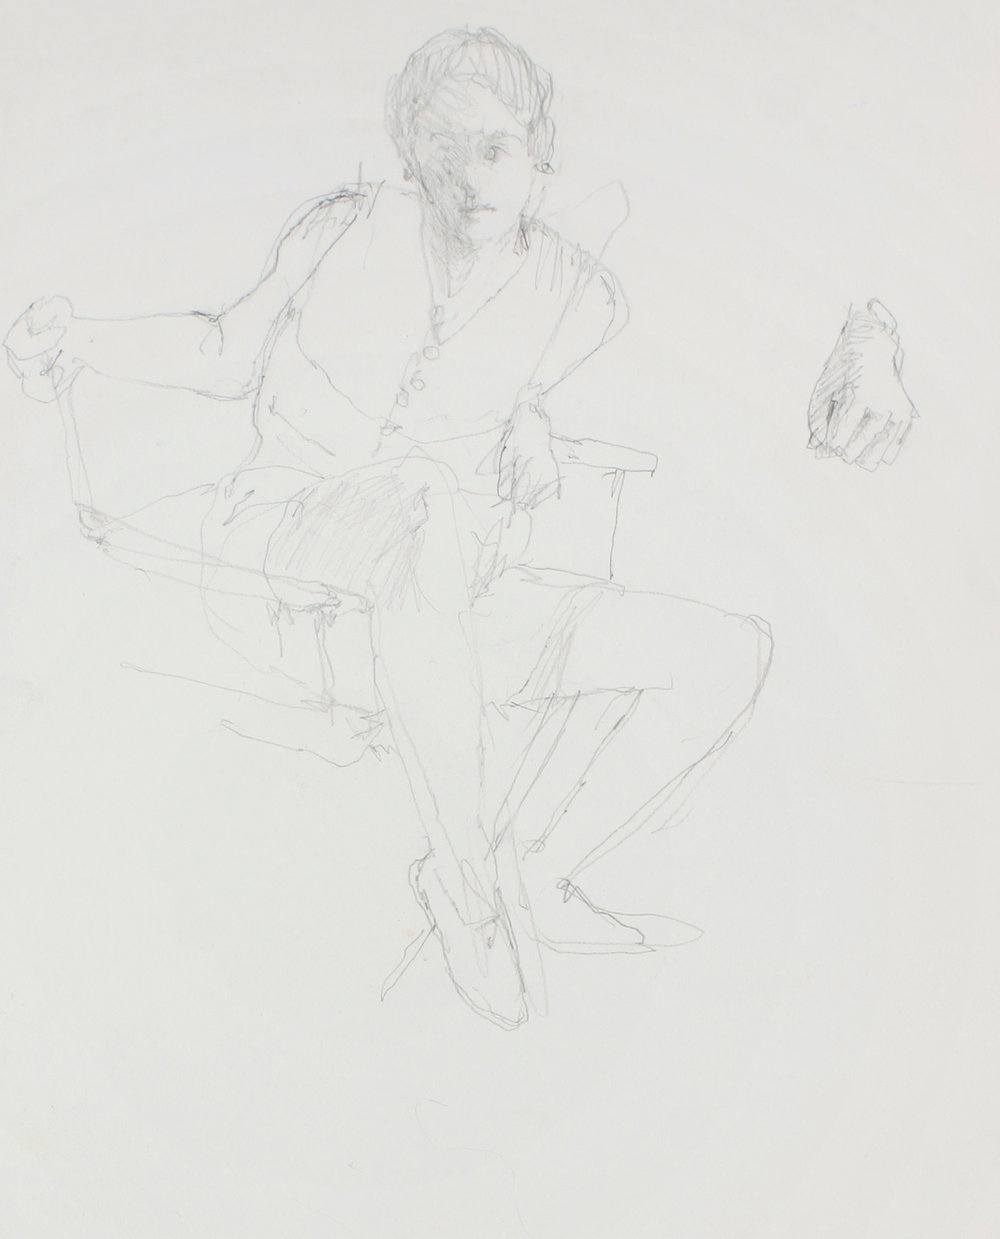 1989_Study_for_Seated_Girl_(Sophie_with_Detail_of_Hand)_pencil_on_paper_15x11in_WPF622.jpg